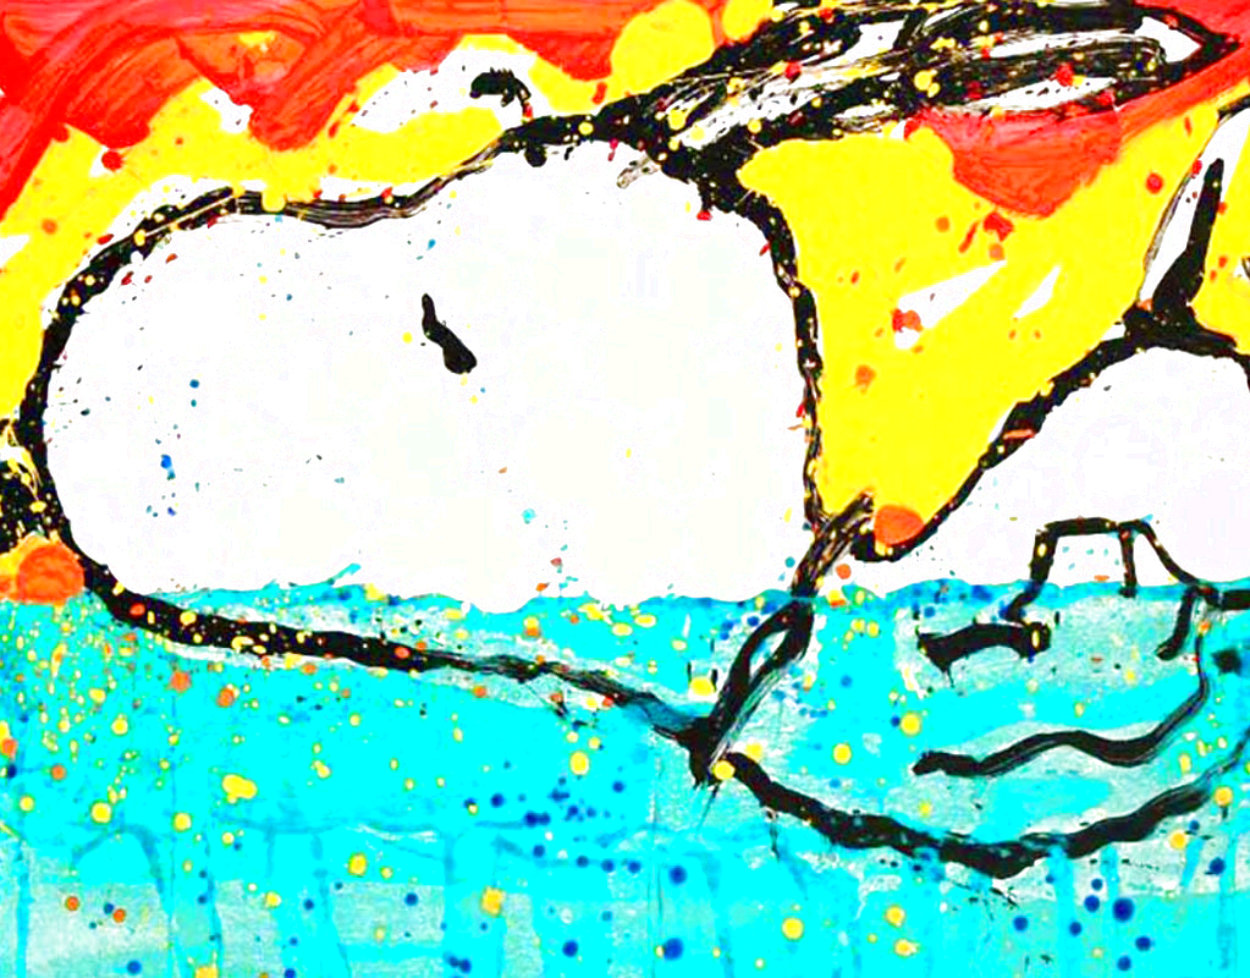 Bora Bora Boogie Oogie 2007 Limited Edition Print by Tom Everhart